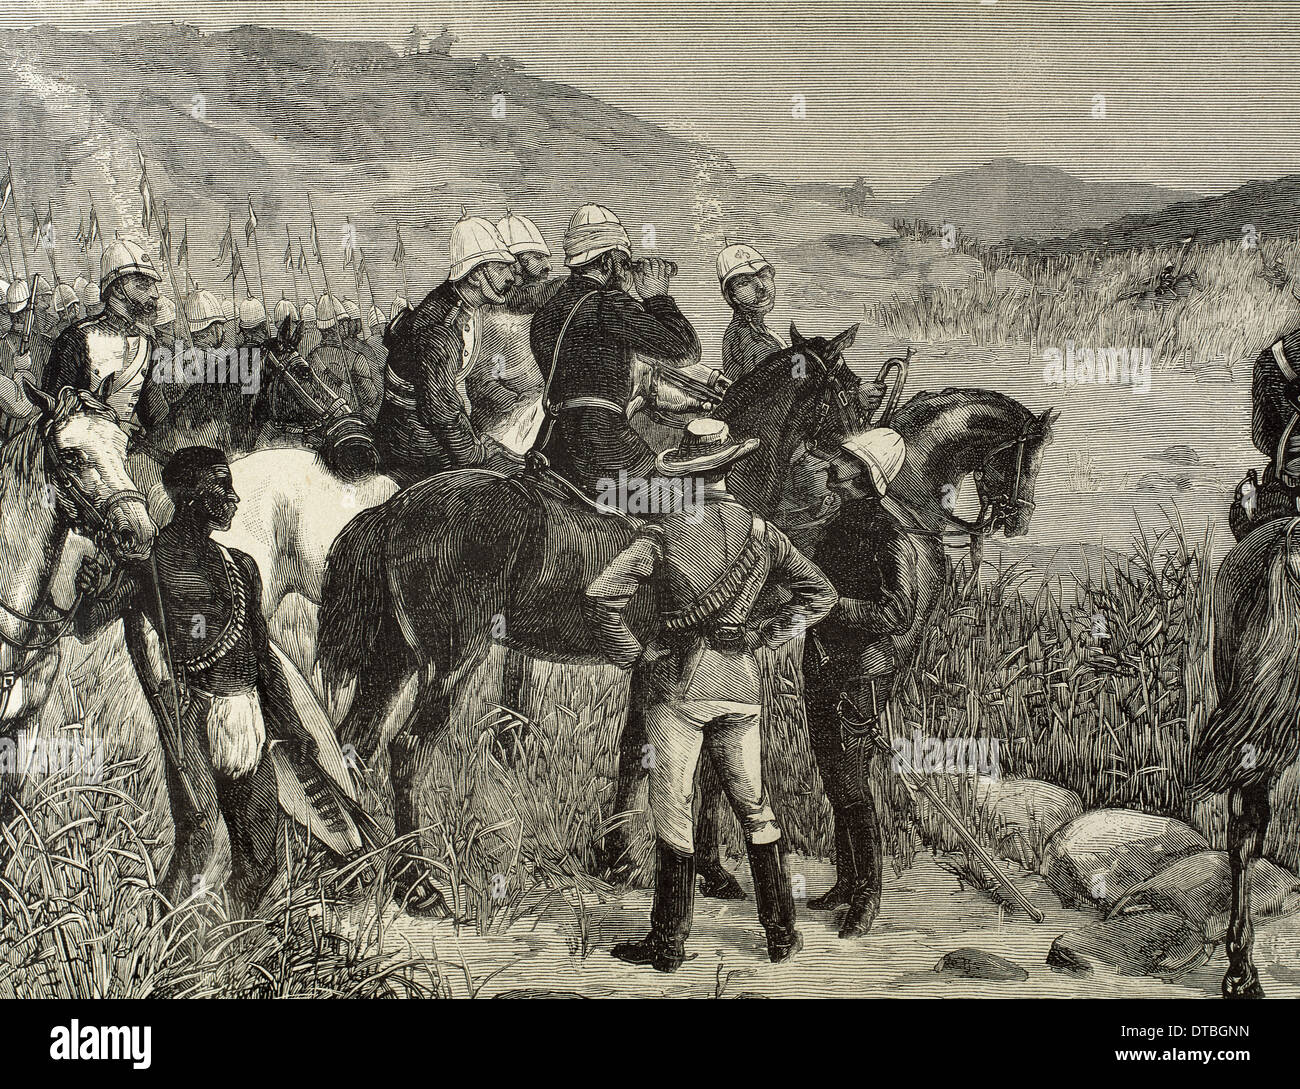 Capture of Cetshwayo. Major Marter sights the Kraal, last refuge of the ex-king of the Zulus. Engraving. - Stock Image